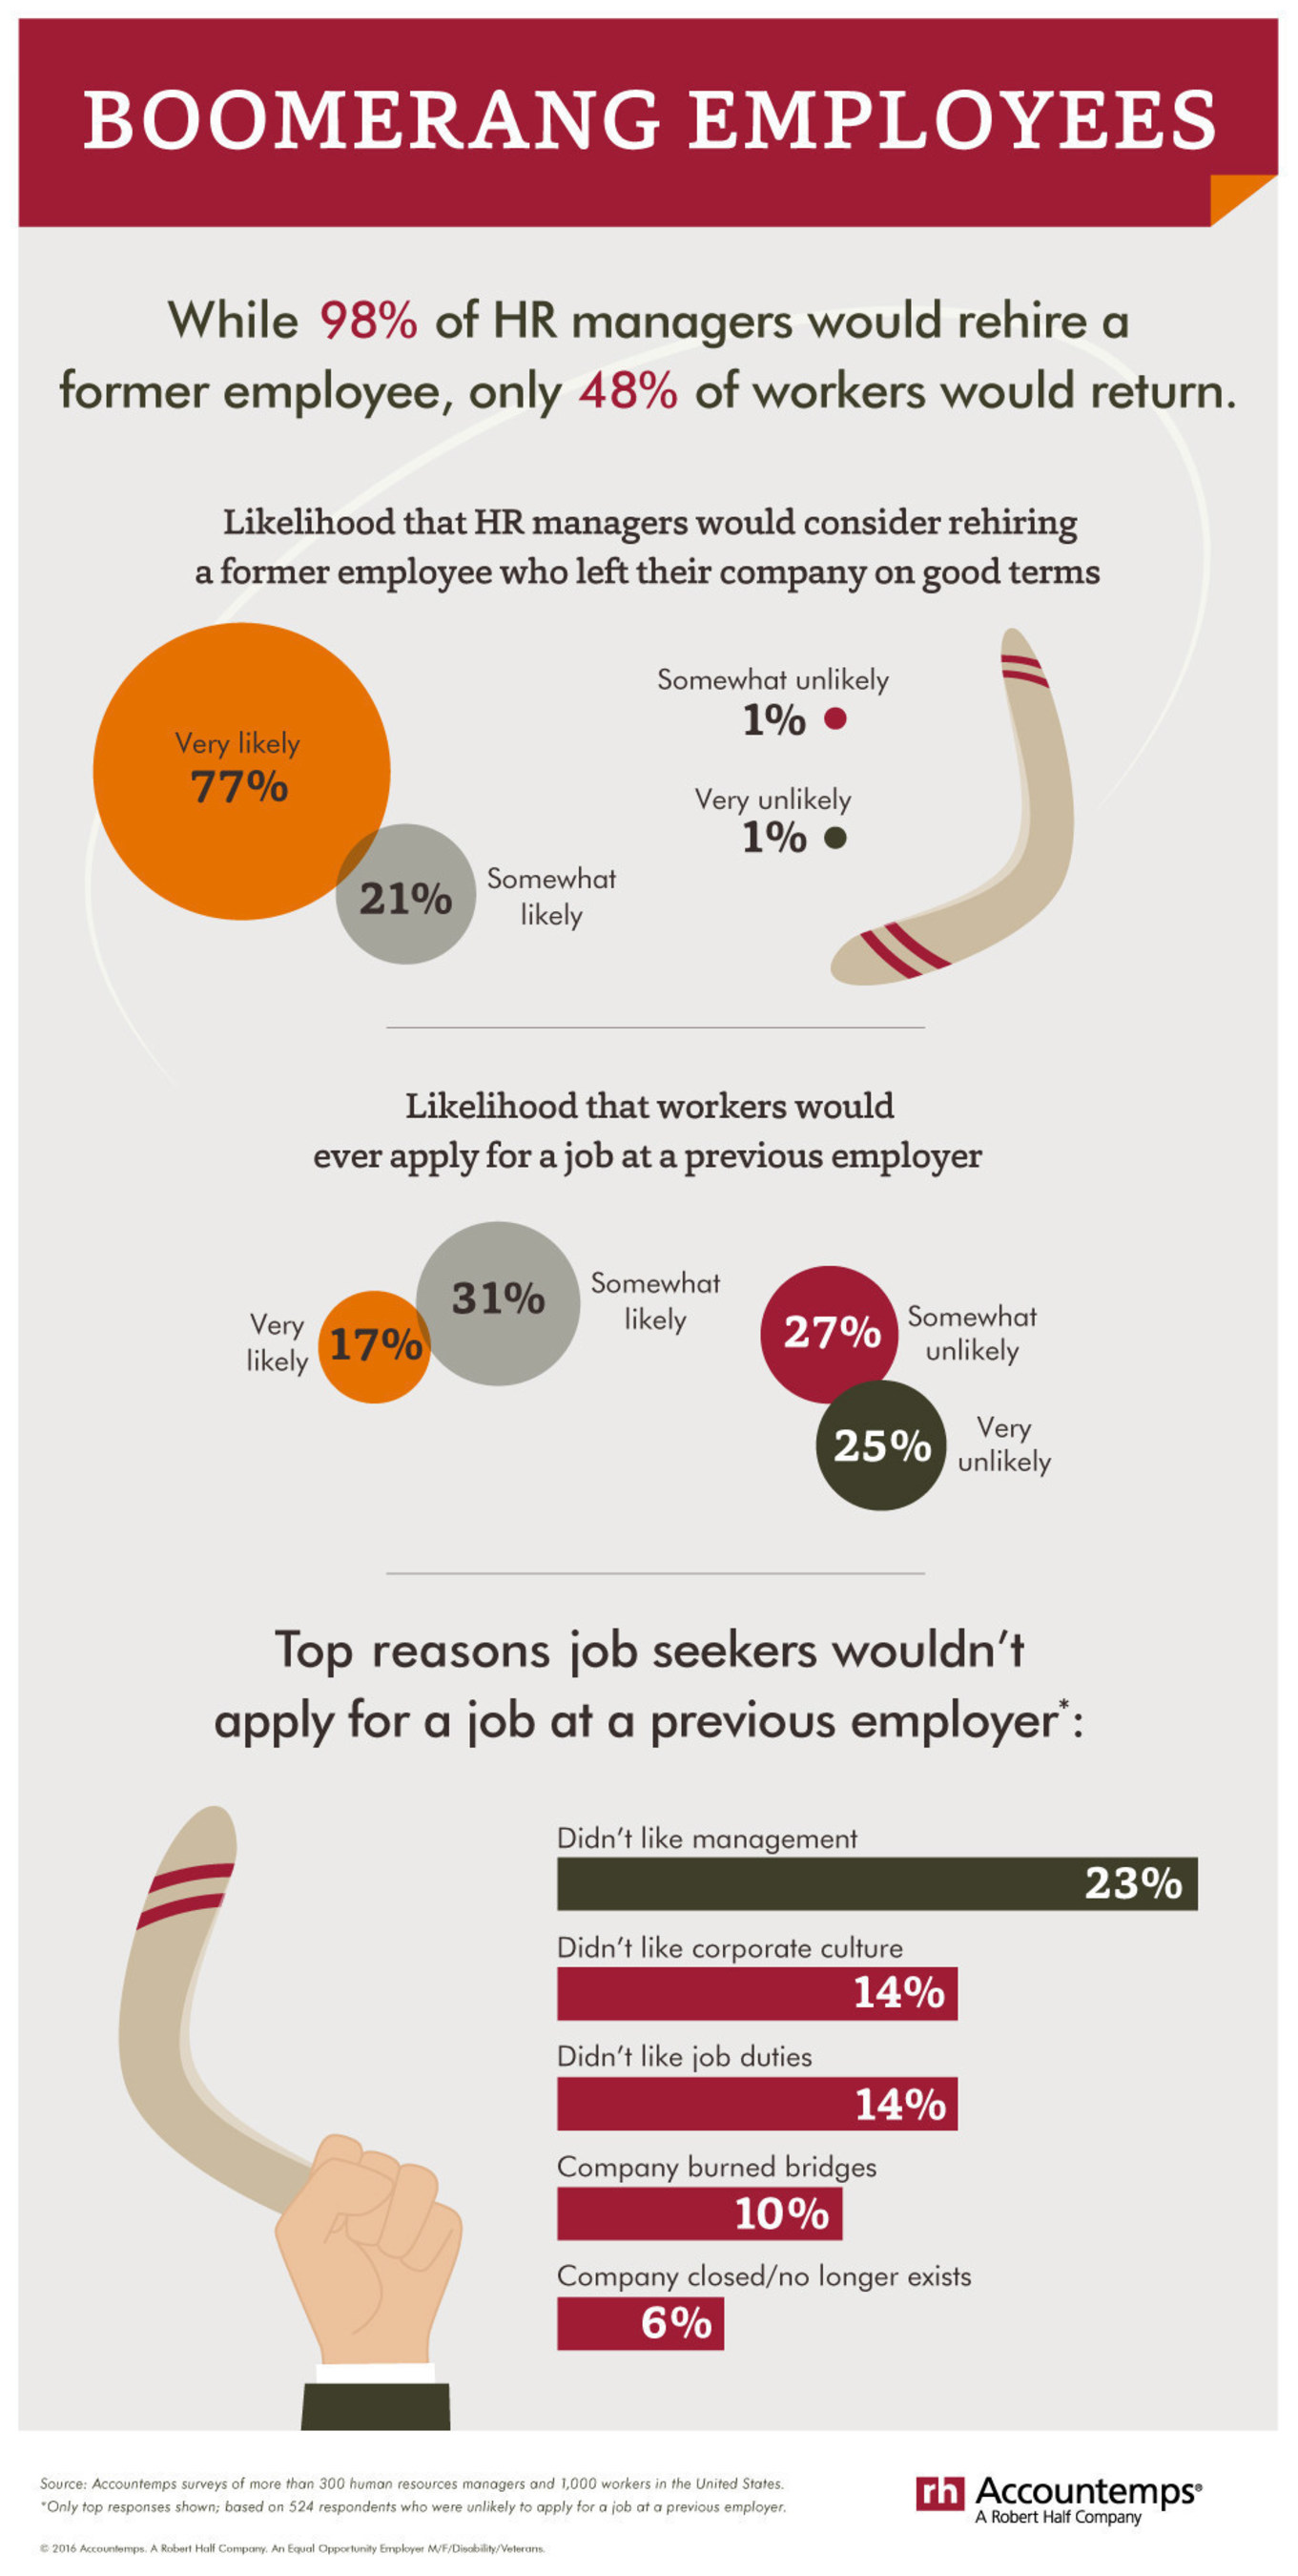 According to Accountemps research, 98 percent of human resources managers would rehire a former employee, but only 48 percent of workers would return.